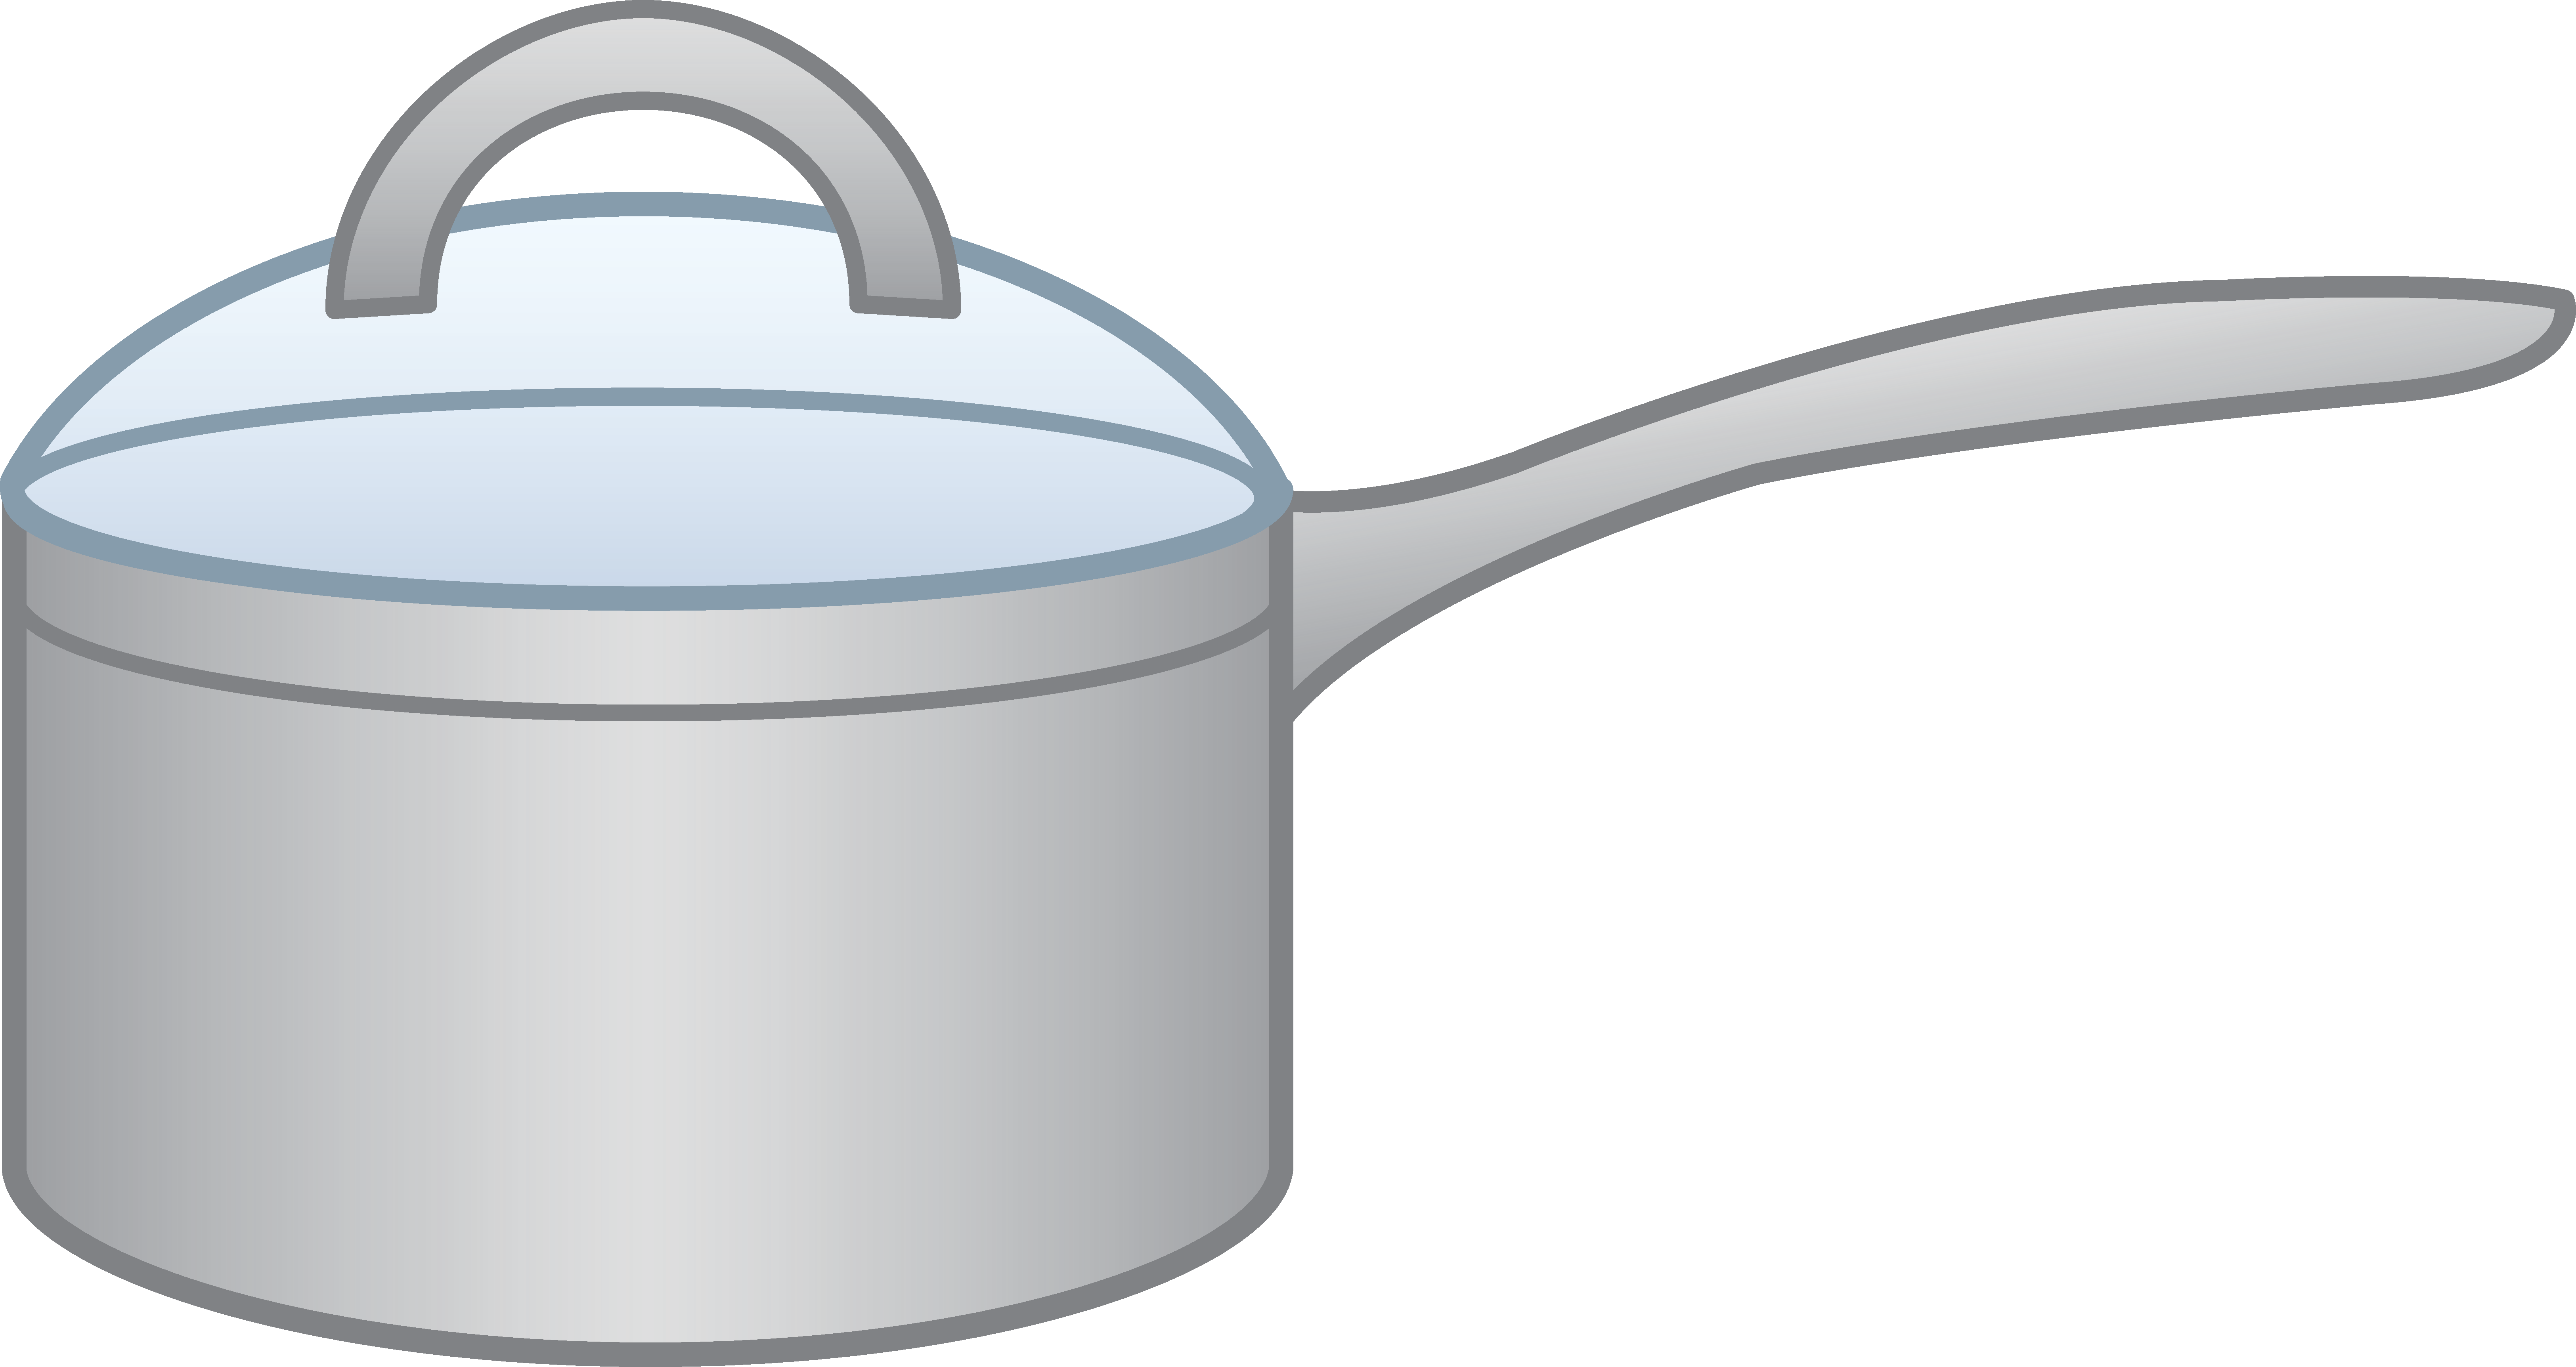 Clipart science kitchen. Cooking pot drawing at